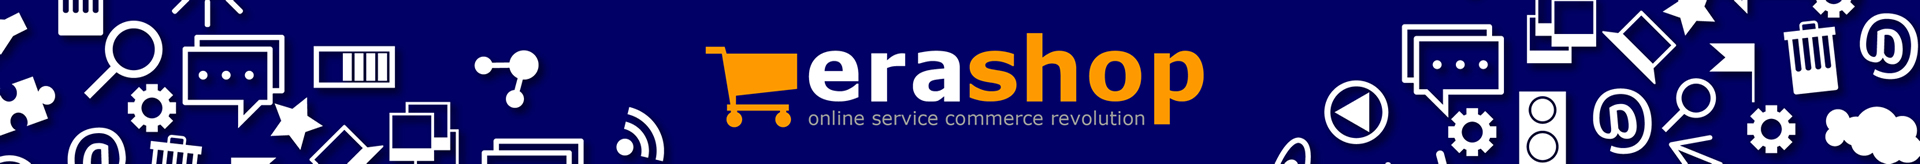 Erashop i-commerce